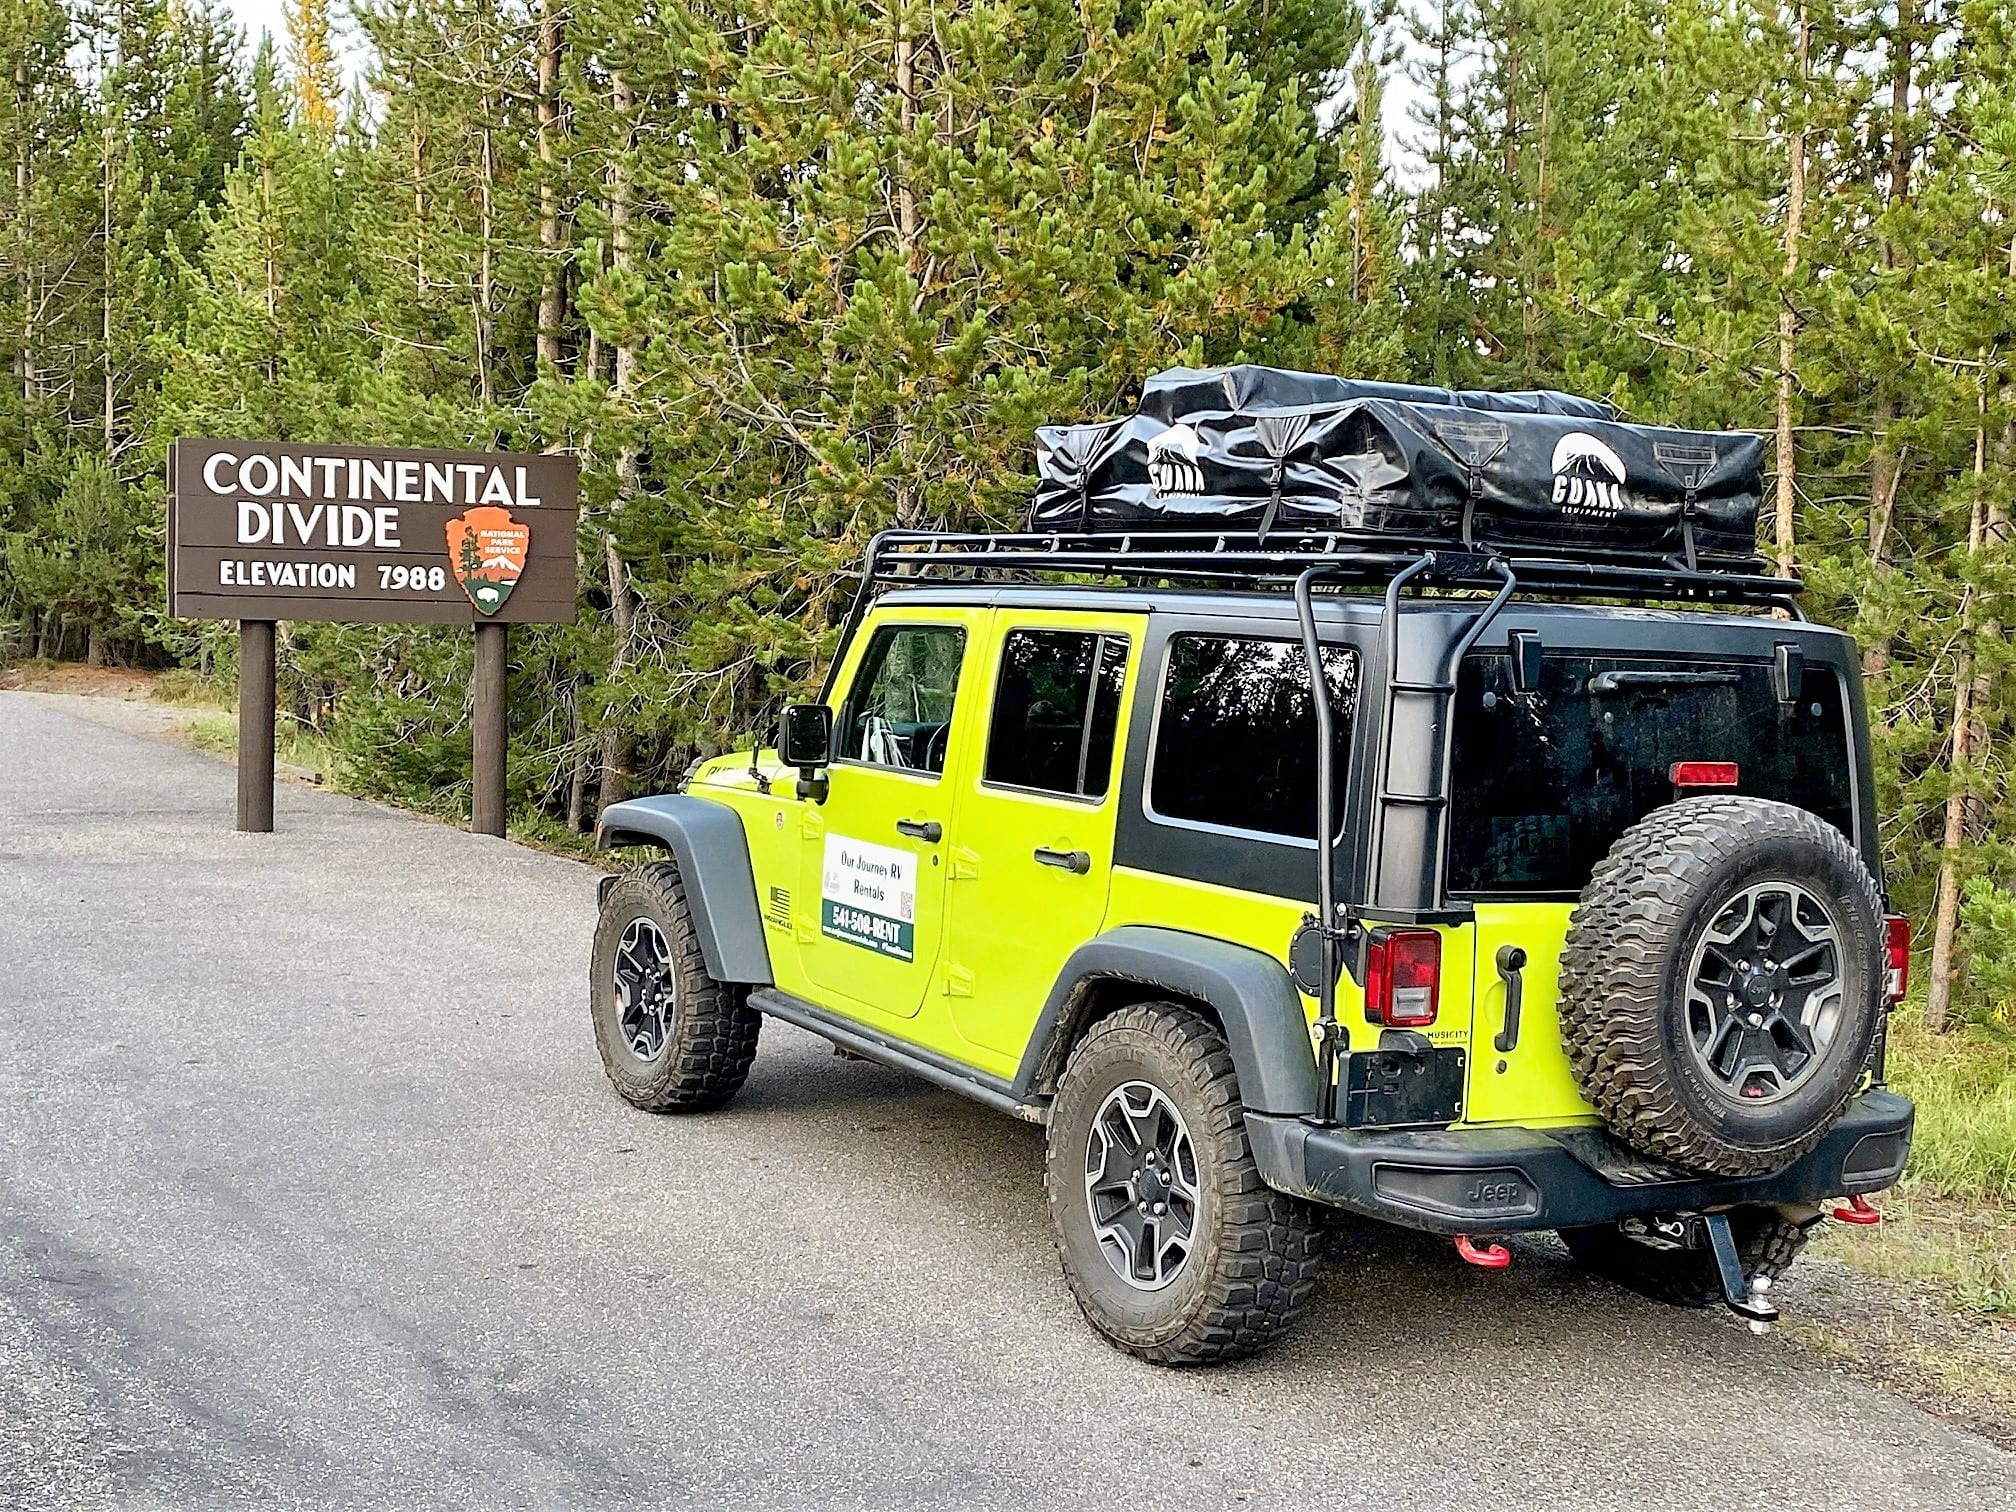 Jeep Wrangler Unlimited Rubicon Hardrock 2016